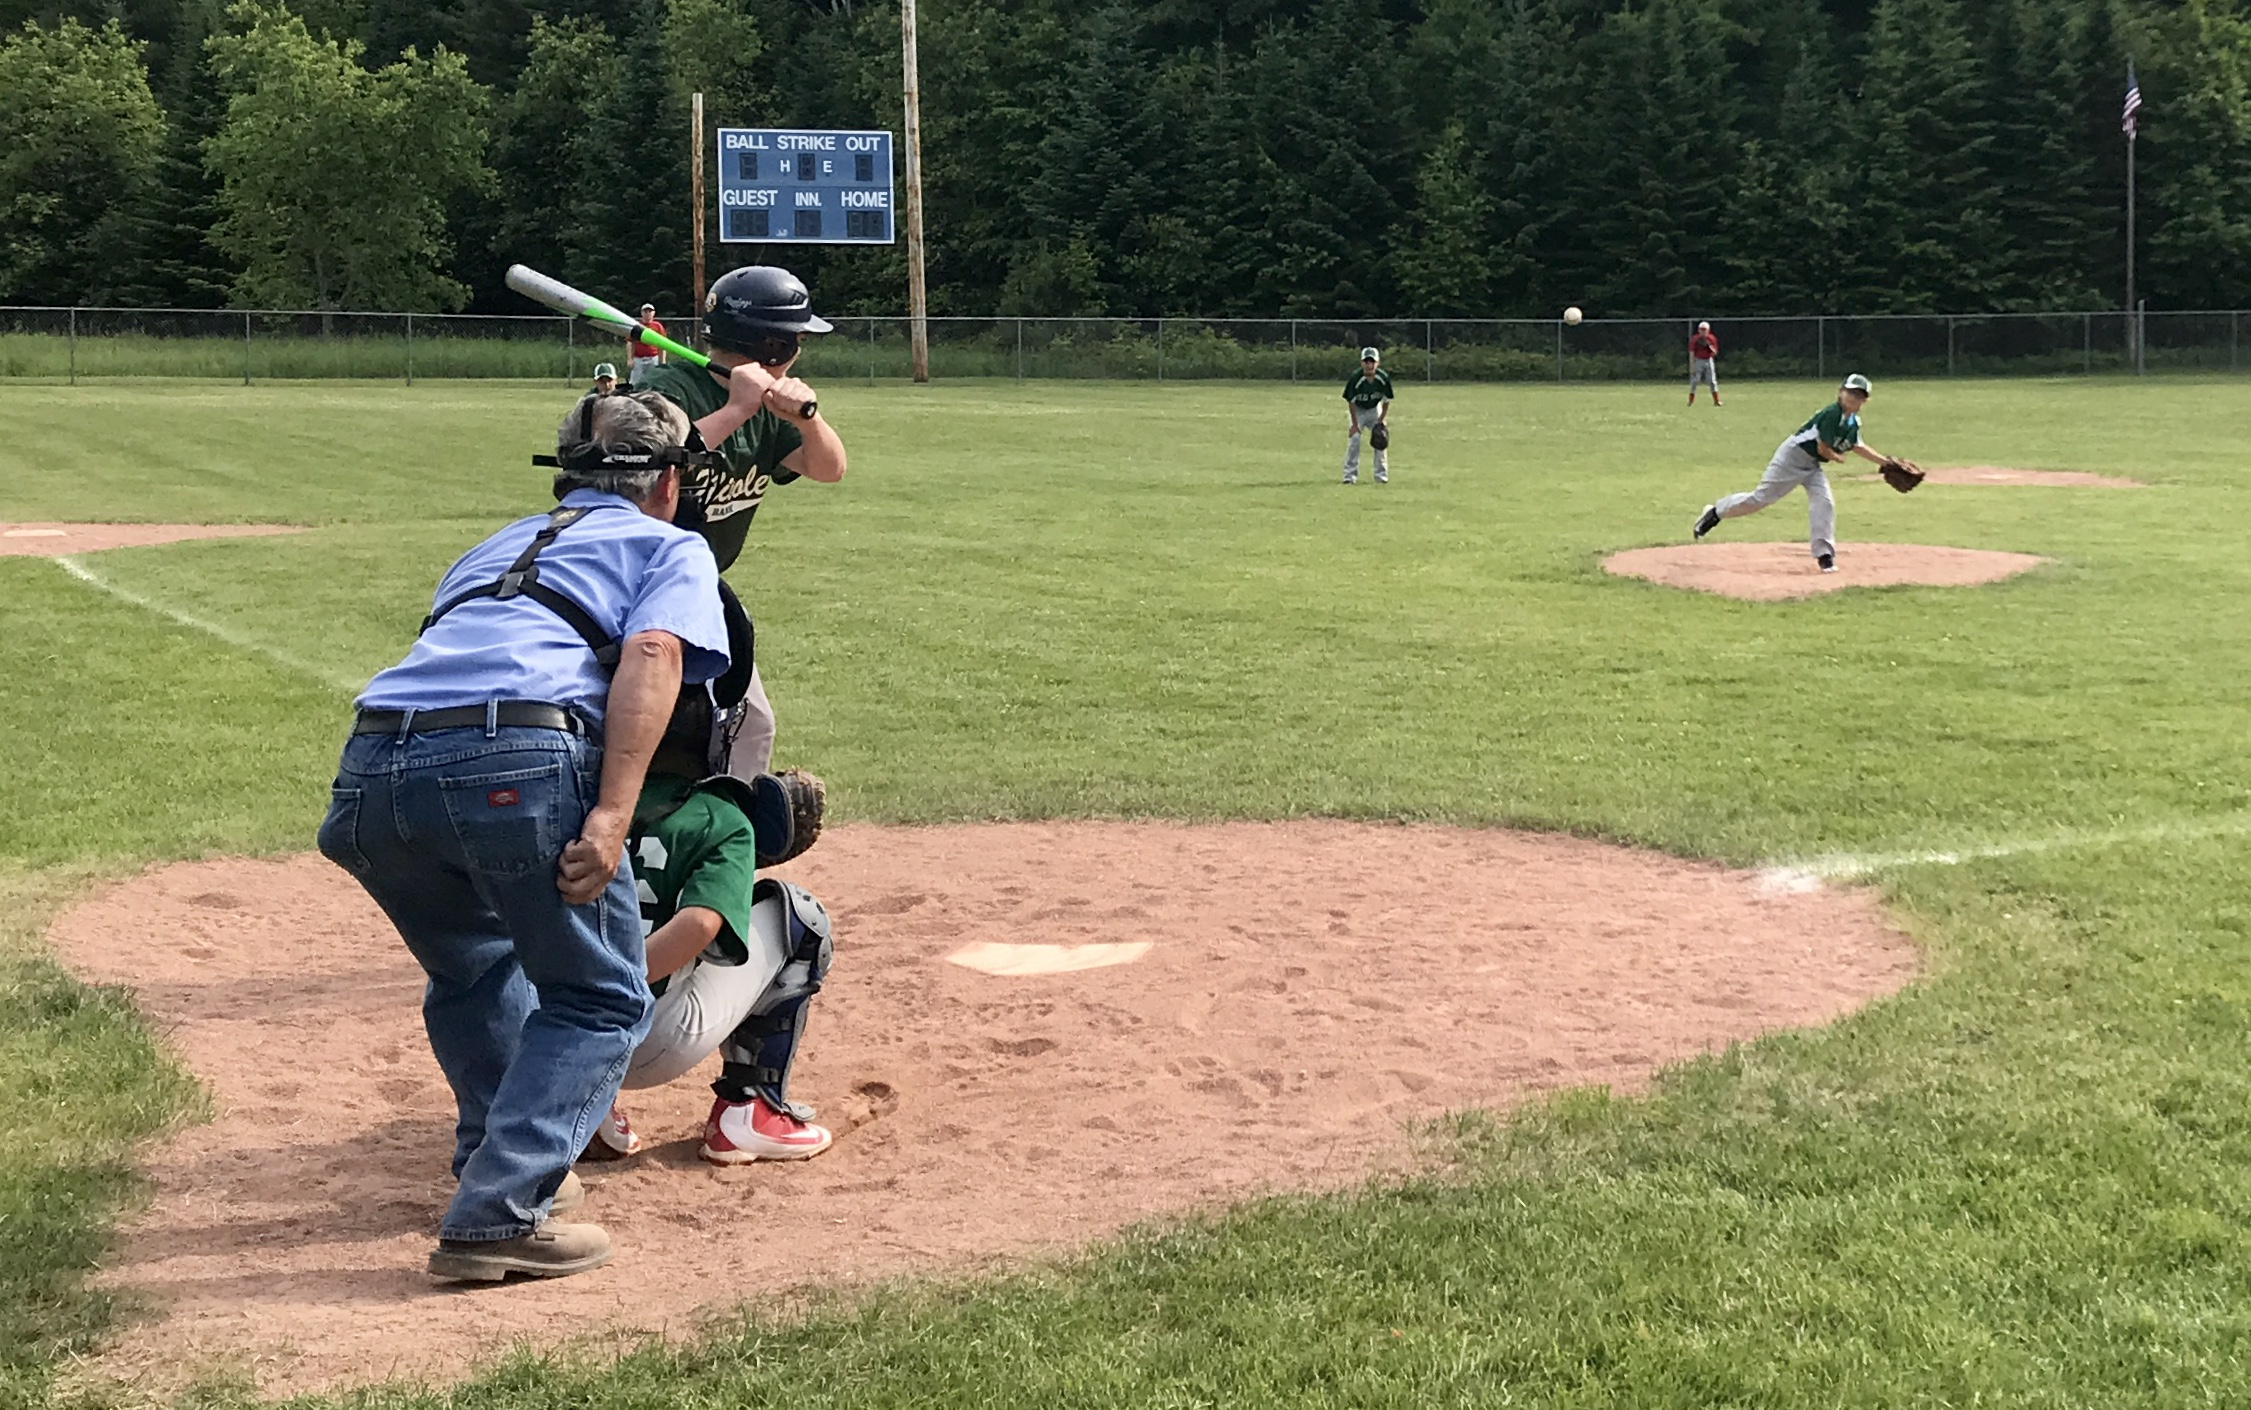 Fisher Grandy pitches during the Little League All-Star scrimmage after the game at home on Sunday, June 24. The Islanders II won the four-inning game, 7 to 4. After four full innings, all players from both teams lined up in the field by height and were counted off for a scrimmage. The scrimmage was not scored.